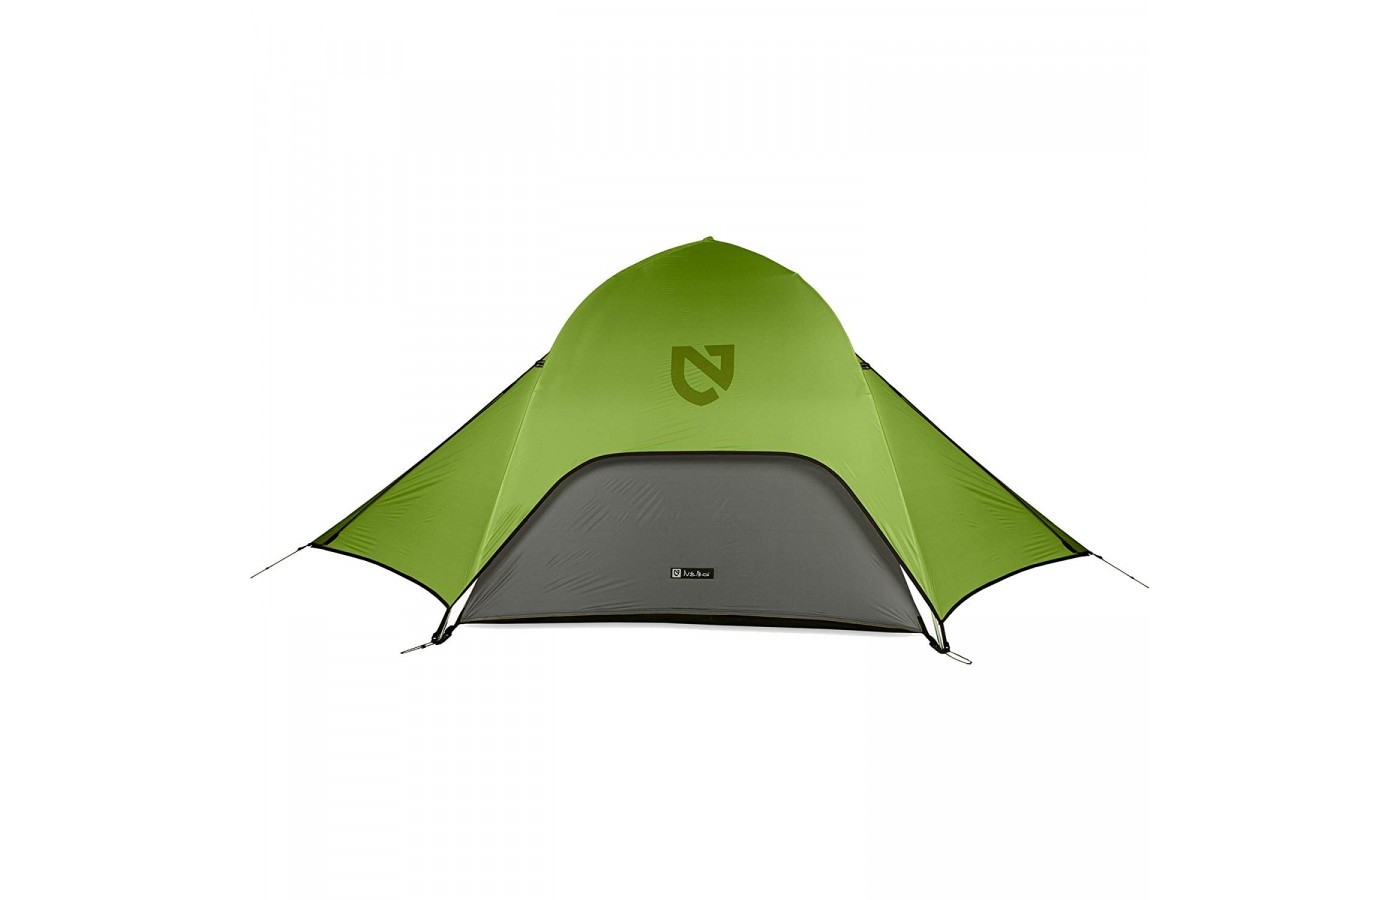 The Nemo Hornet 2P is a two person tent in order to lighten a groups load.